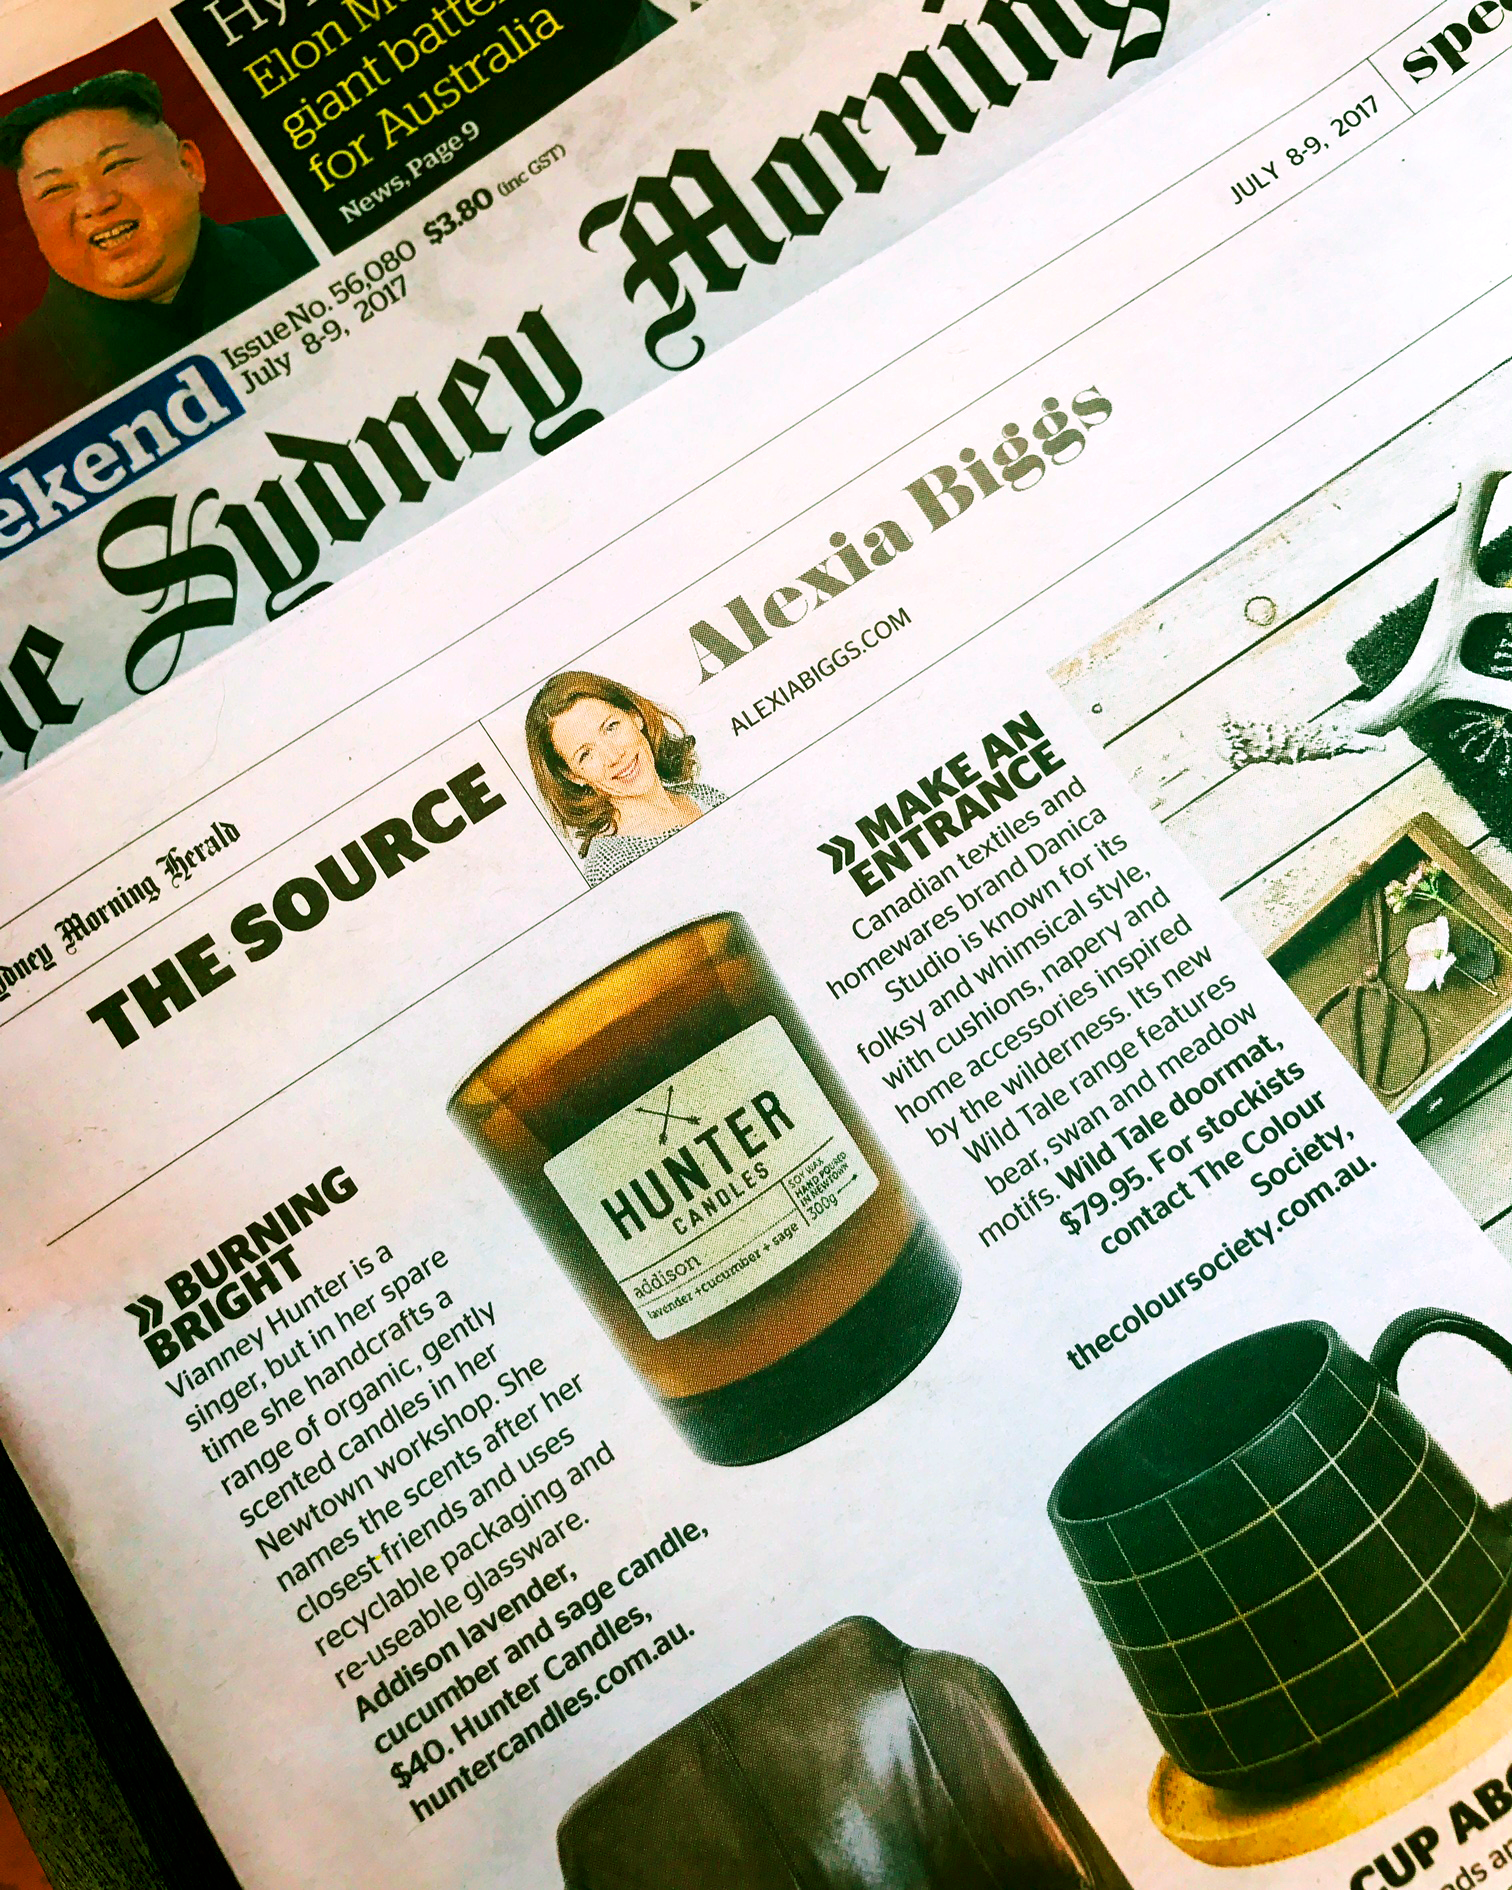 THE AGE AND THE SYDNEY MORNING HERALD -